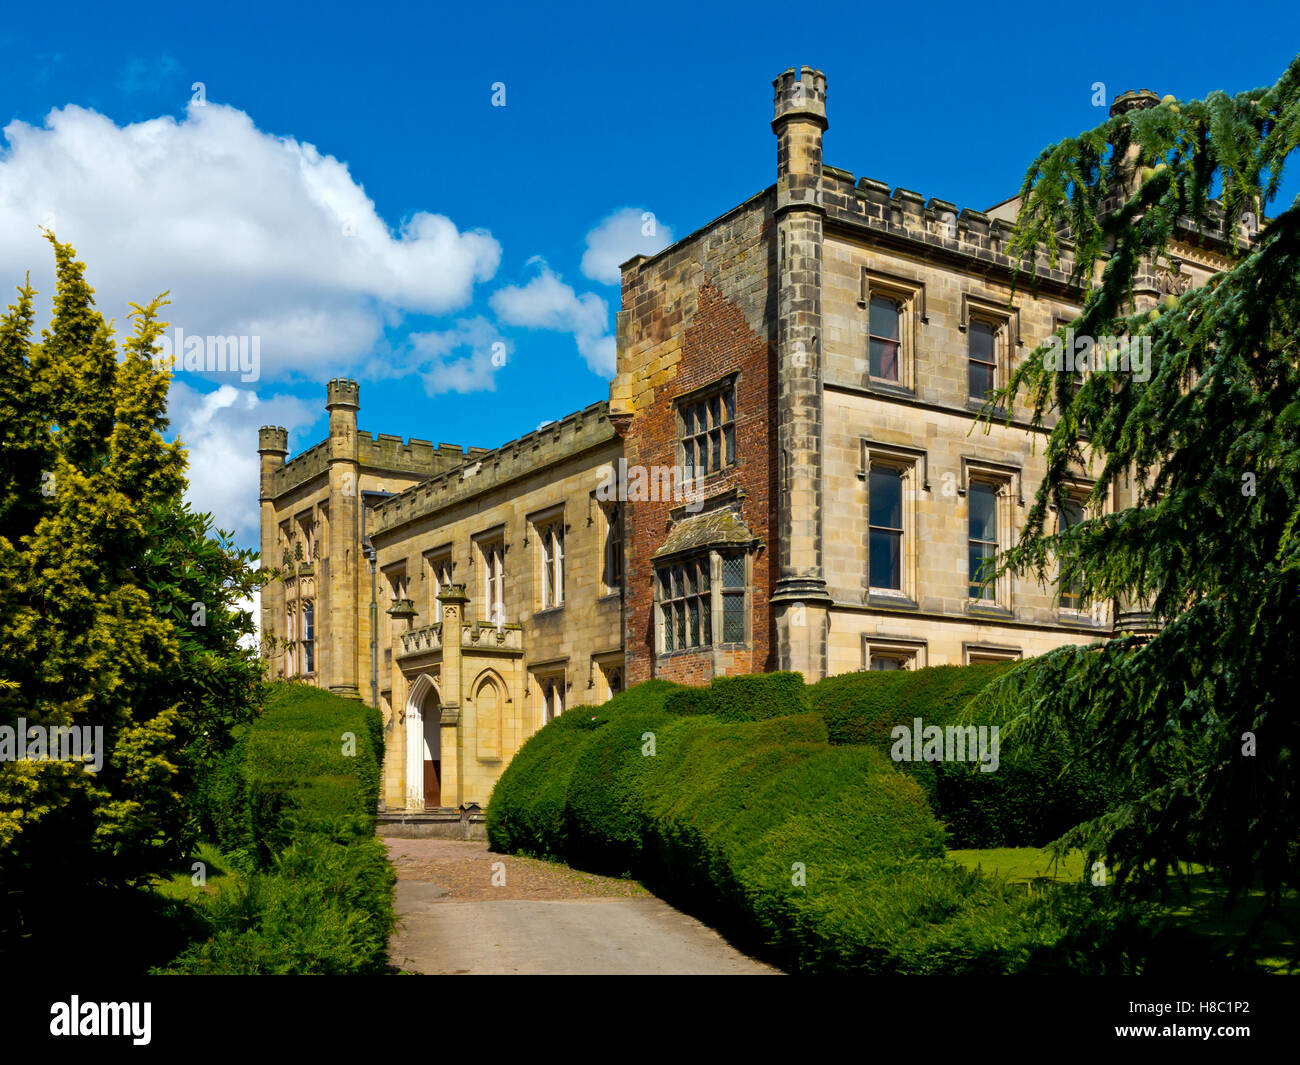 Elvaston Castle a gothic revival stately home in the grounds of Elvaston Country Park near Derby Derbyshire England - Stock Image